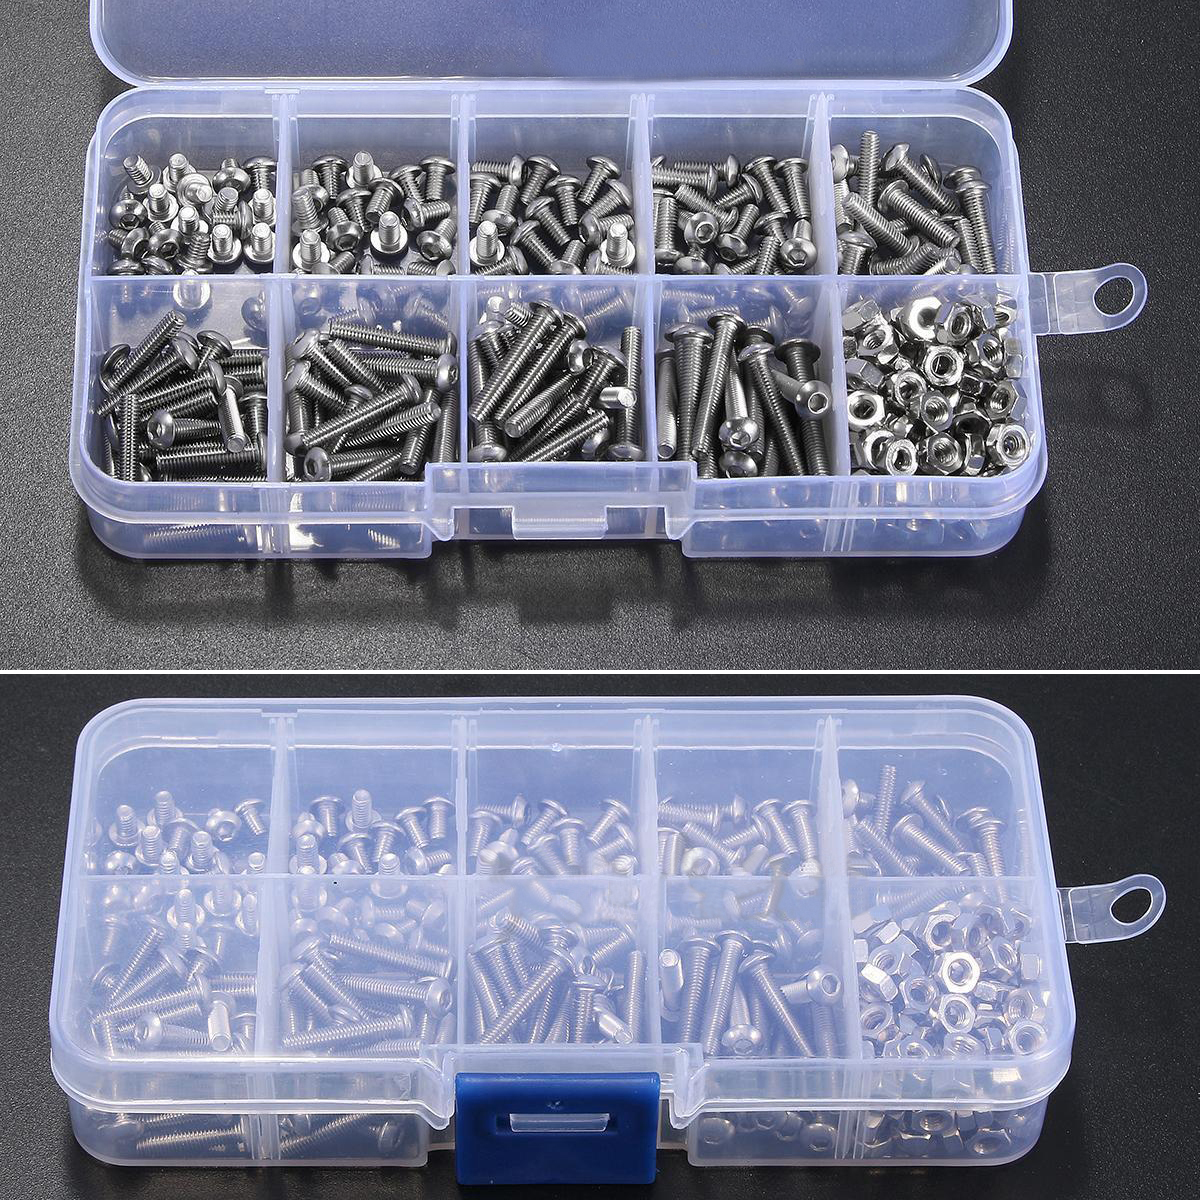 340pcs Assorted Stainless Steel M3 Screw 5/6/8/10/12/14/16/18/20mm with Hex Nuts Bolt Cap Socket Set 340pcs stainless steel m3 a2 hex screw kit assortment nuts bolt cap socket set 125x65x22mm with case